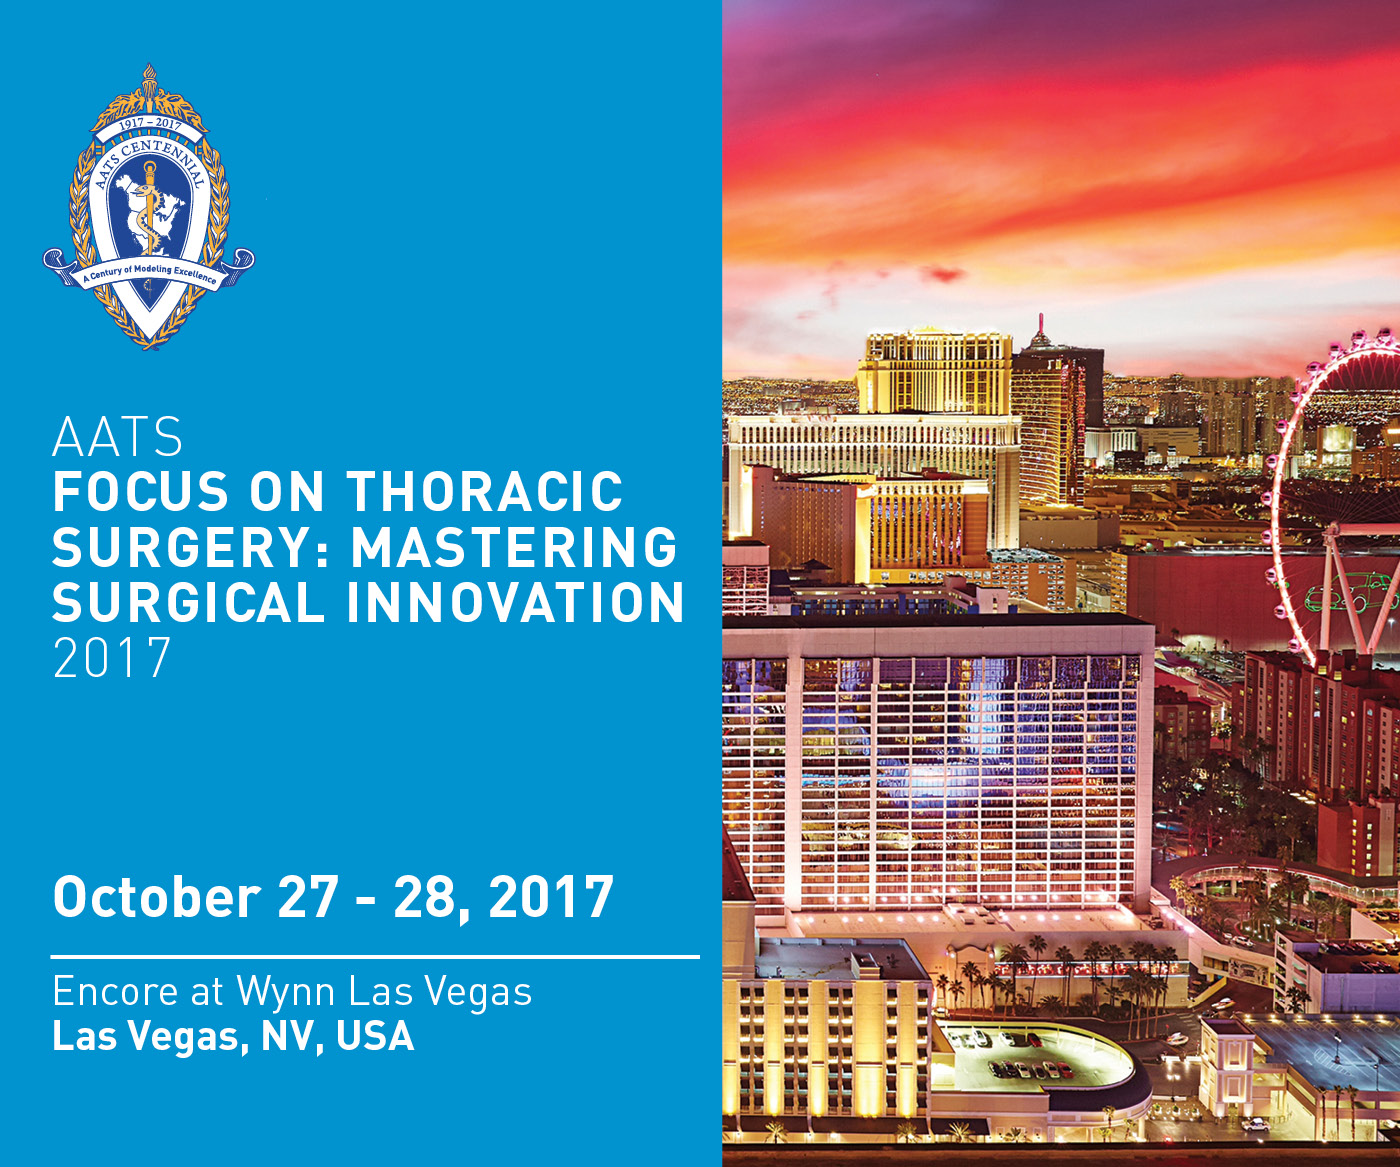 AATS Focus on Thoracic Surgery:Mastering Surgical Innovation